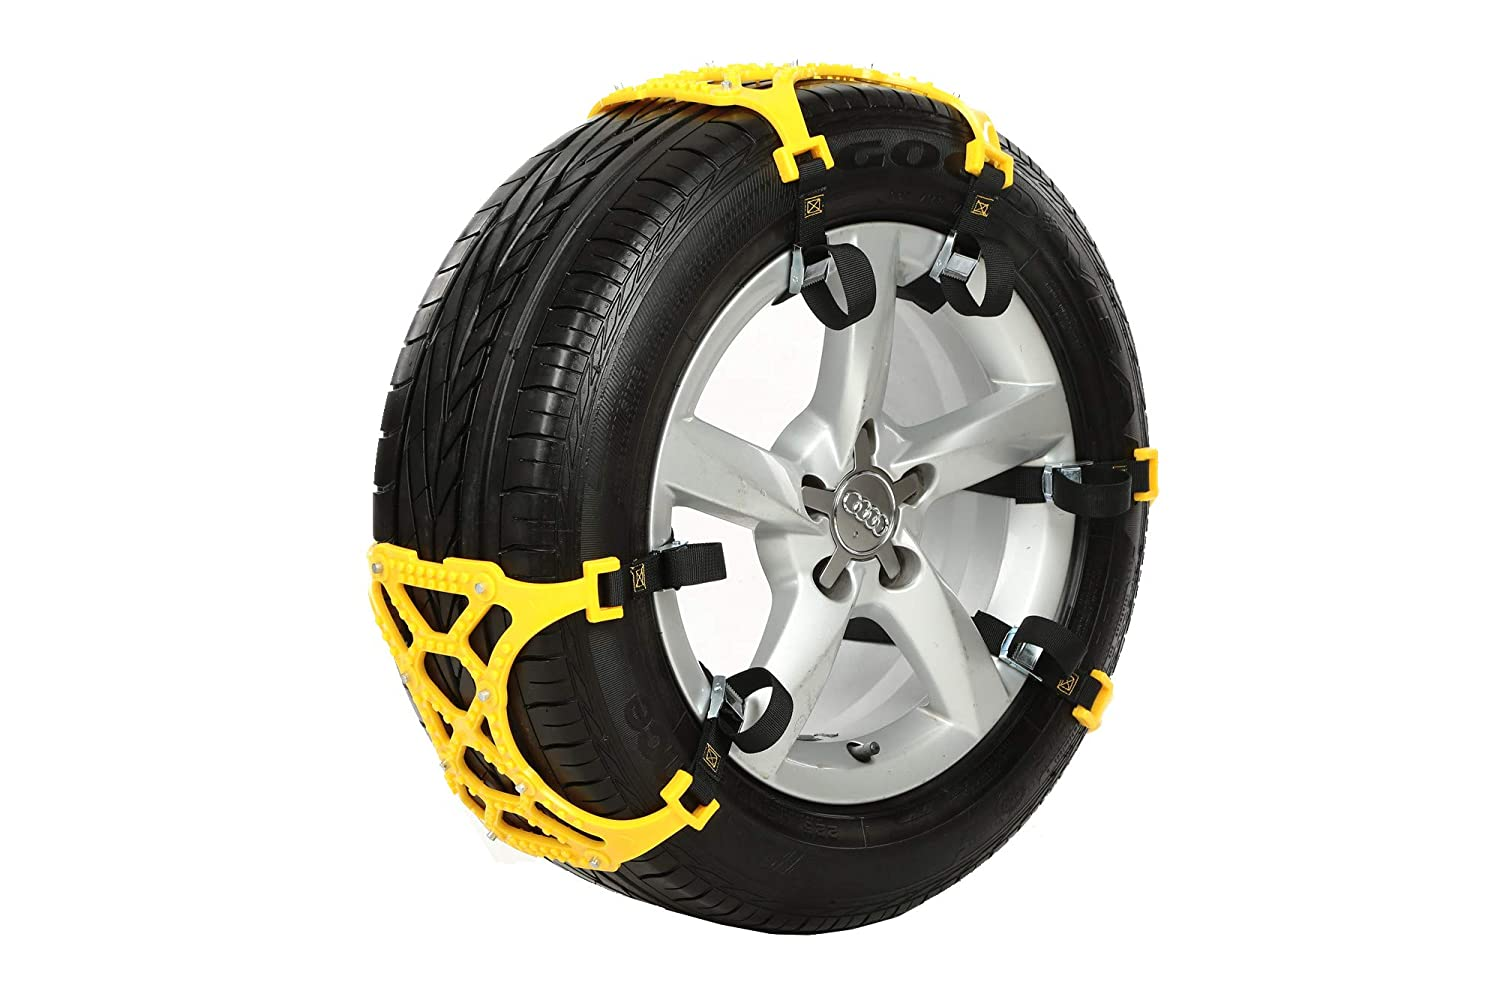 OSIAS New Snow Tire Chain for Car Truck SUV Anti-Skid Emergency Winter Driving .